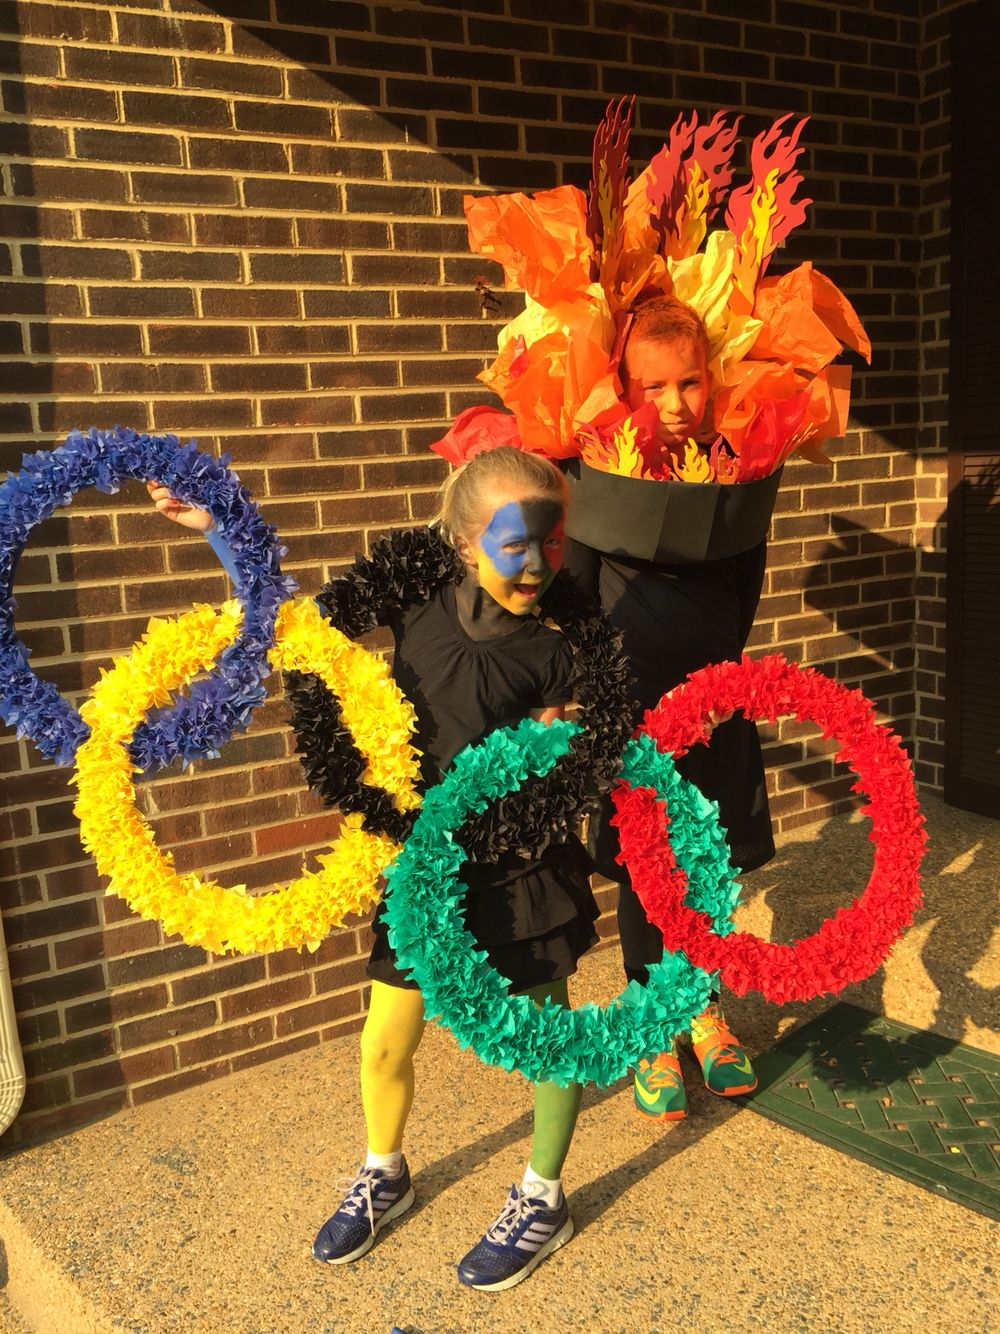 DYI Olympic costumes